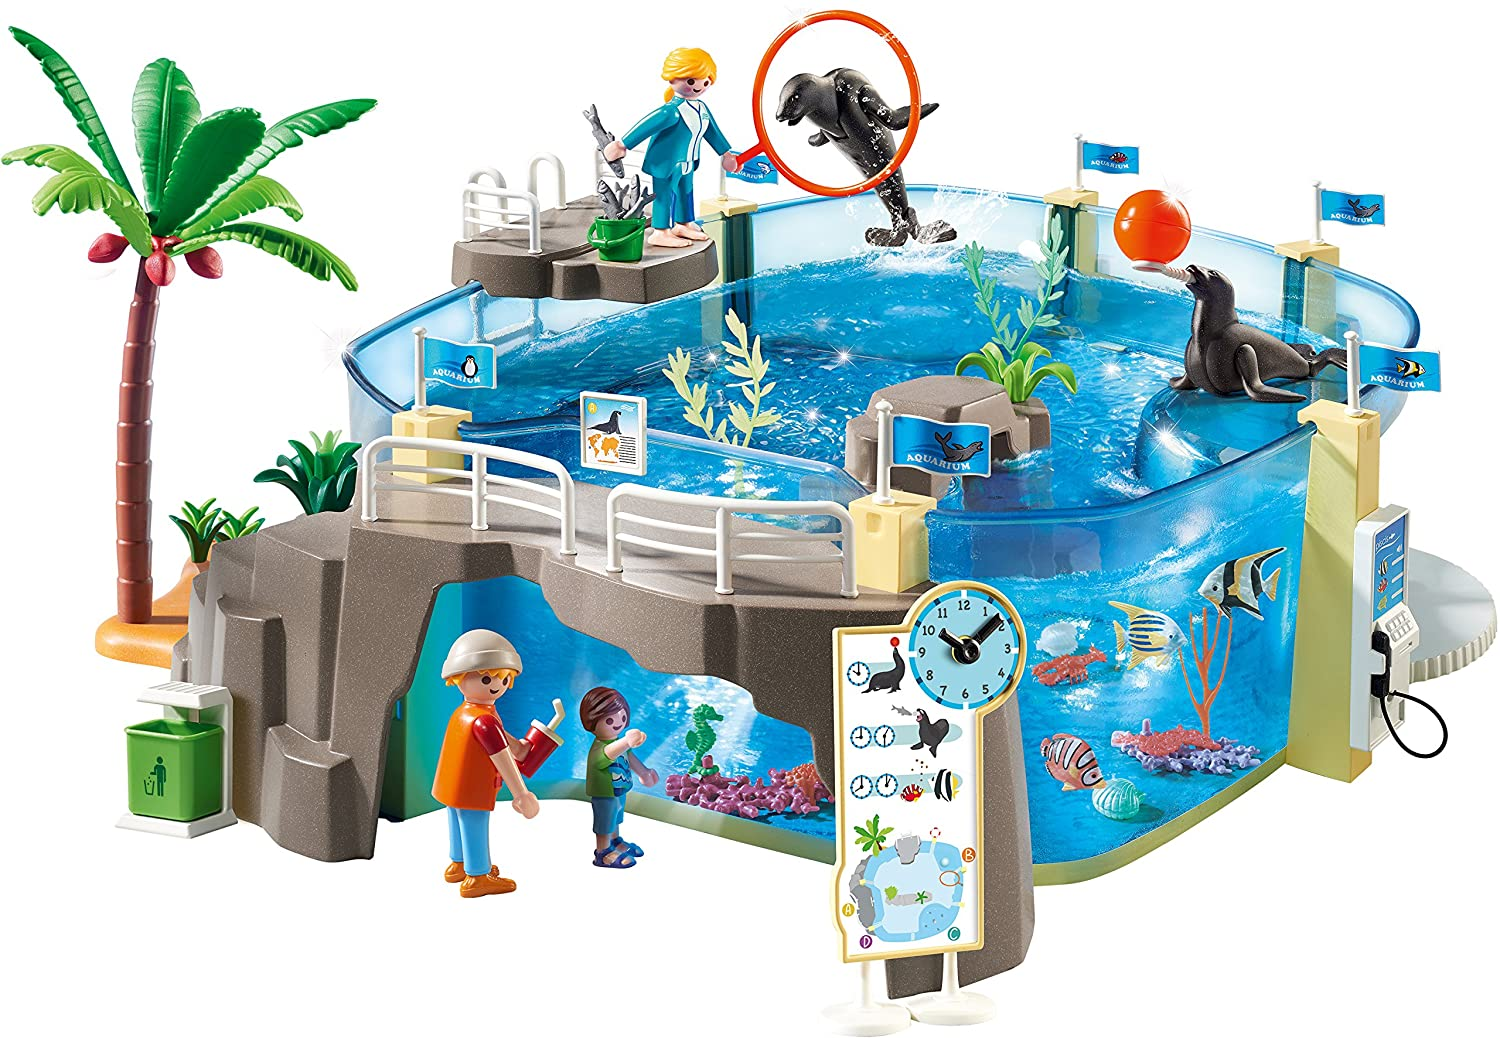 Playmobil Aquarium Building Se...